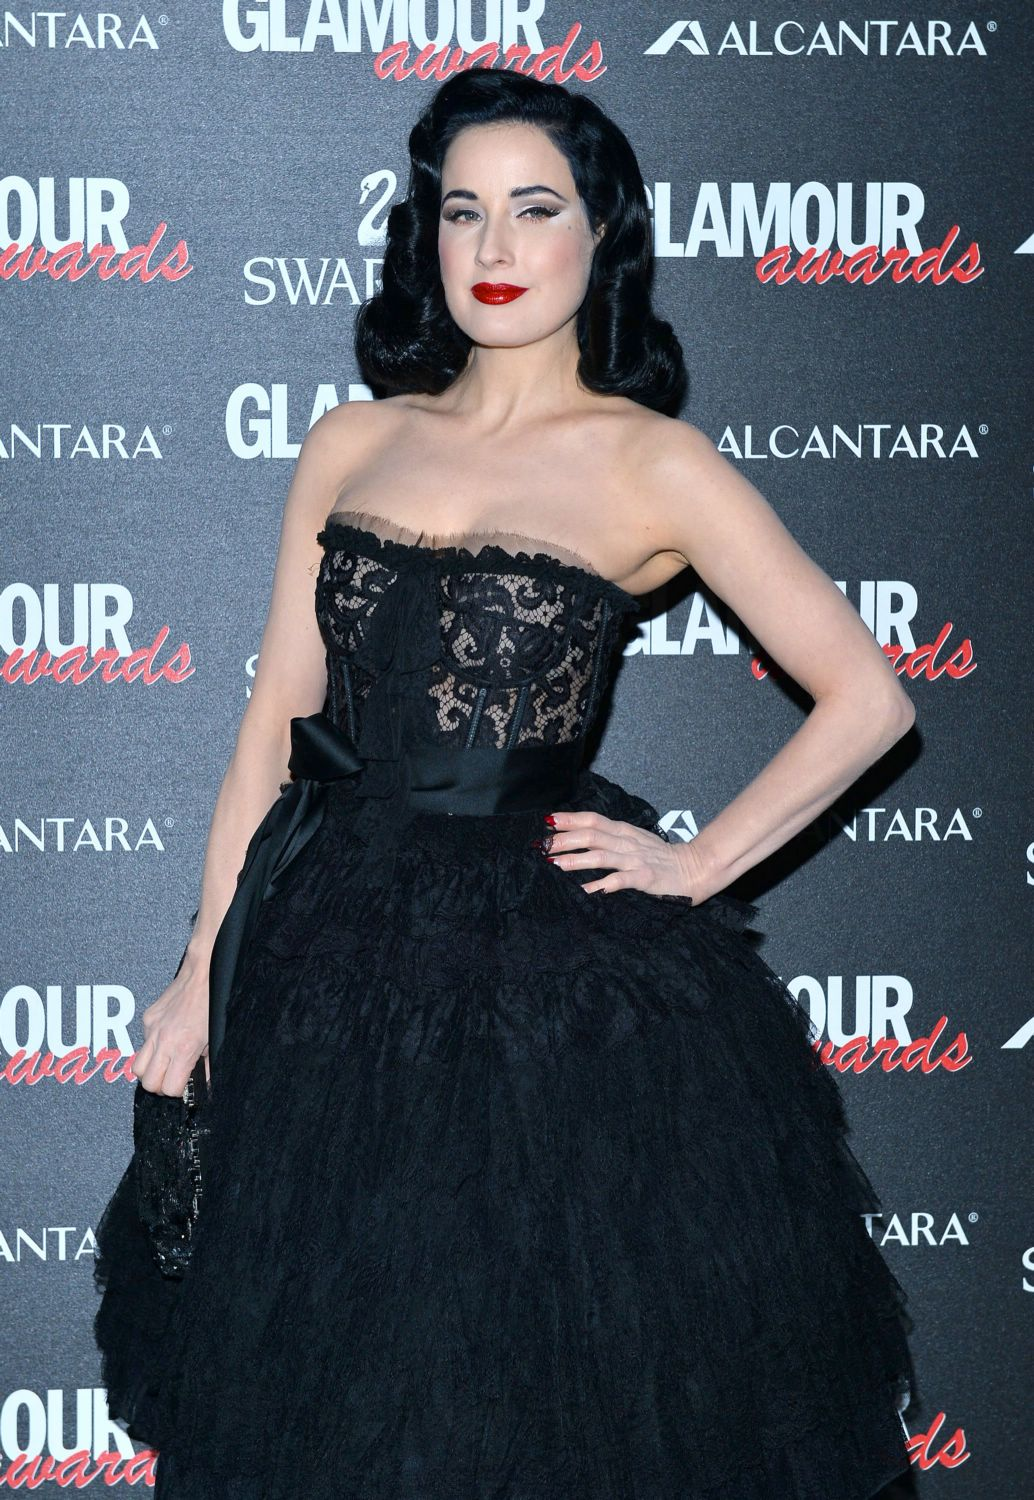 Dita-von-teese-dec-11-glamour-awards04